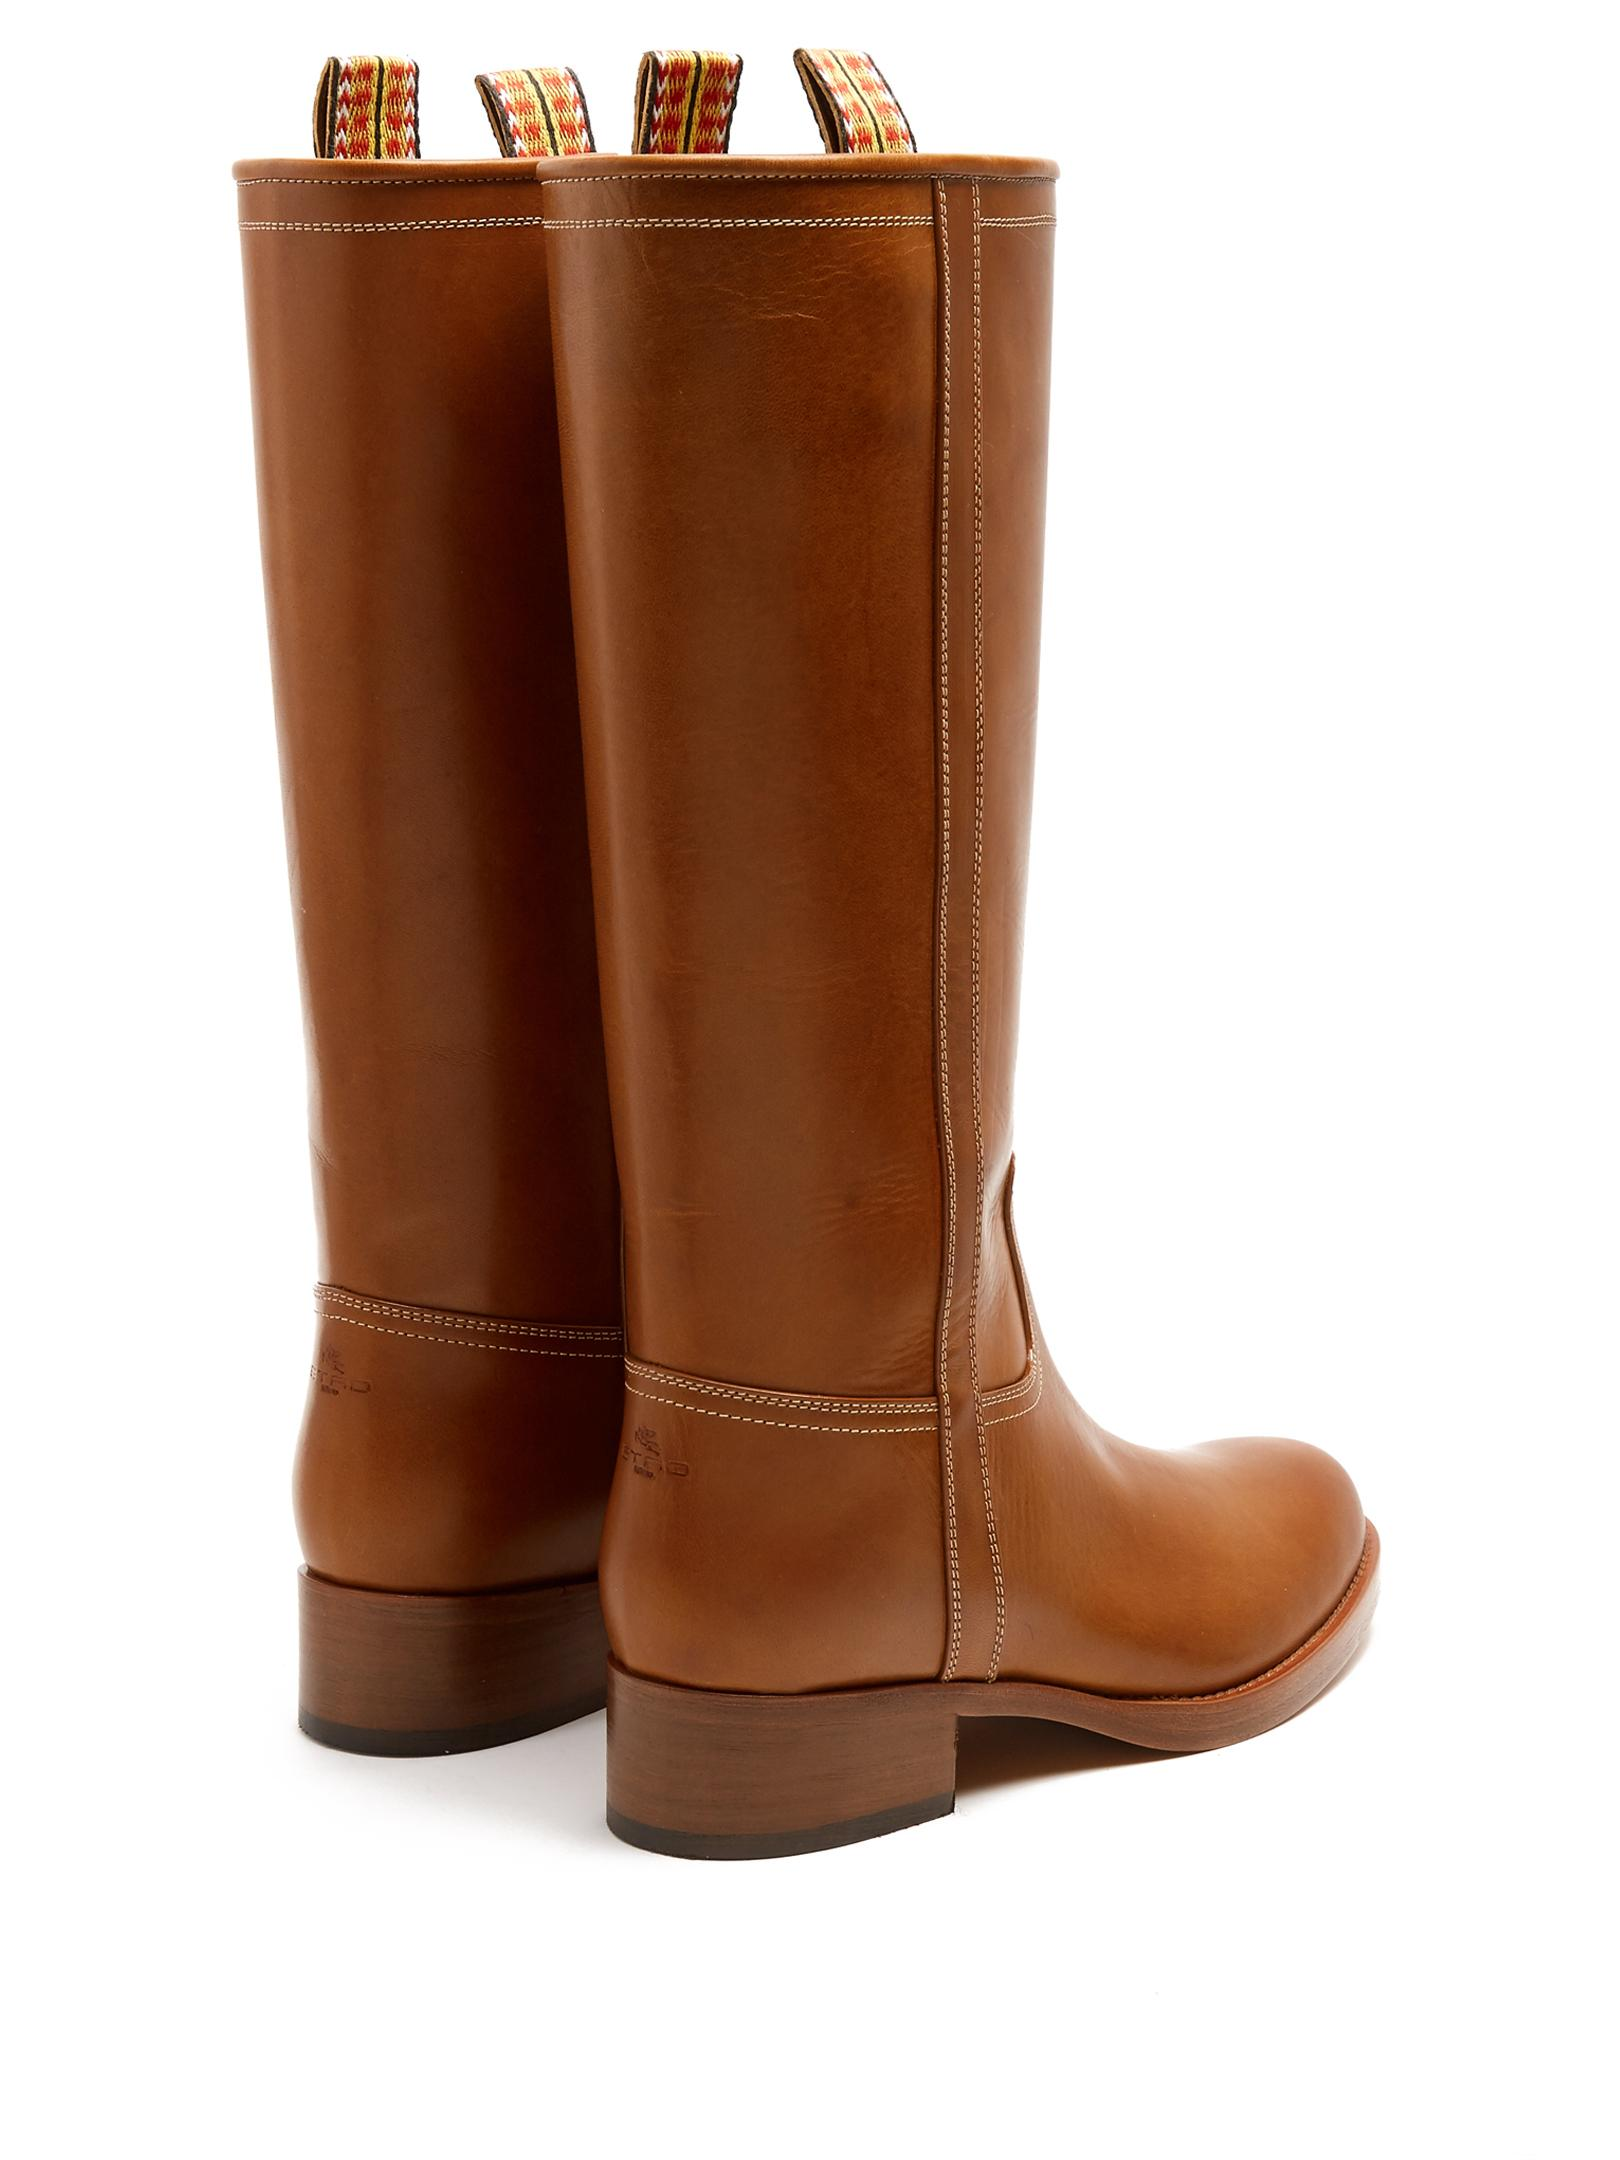 Etro Leather Knee-high Boots in Brown